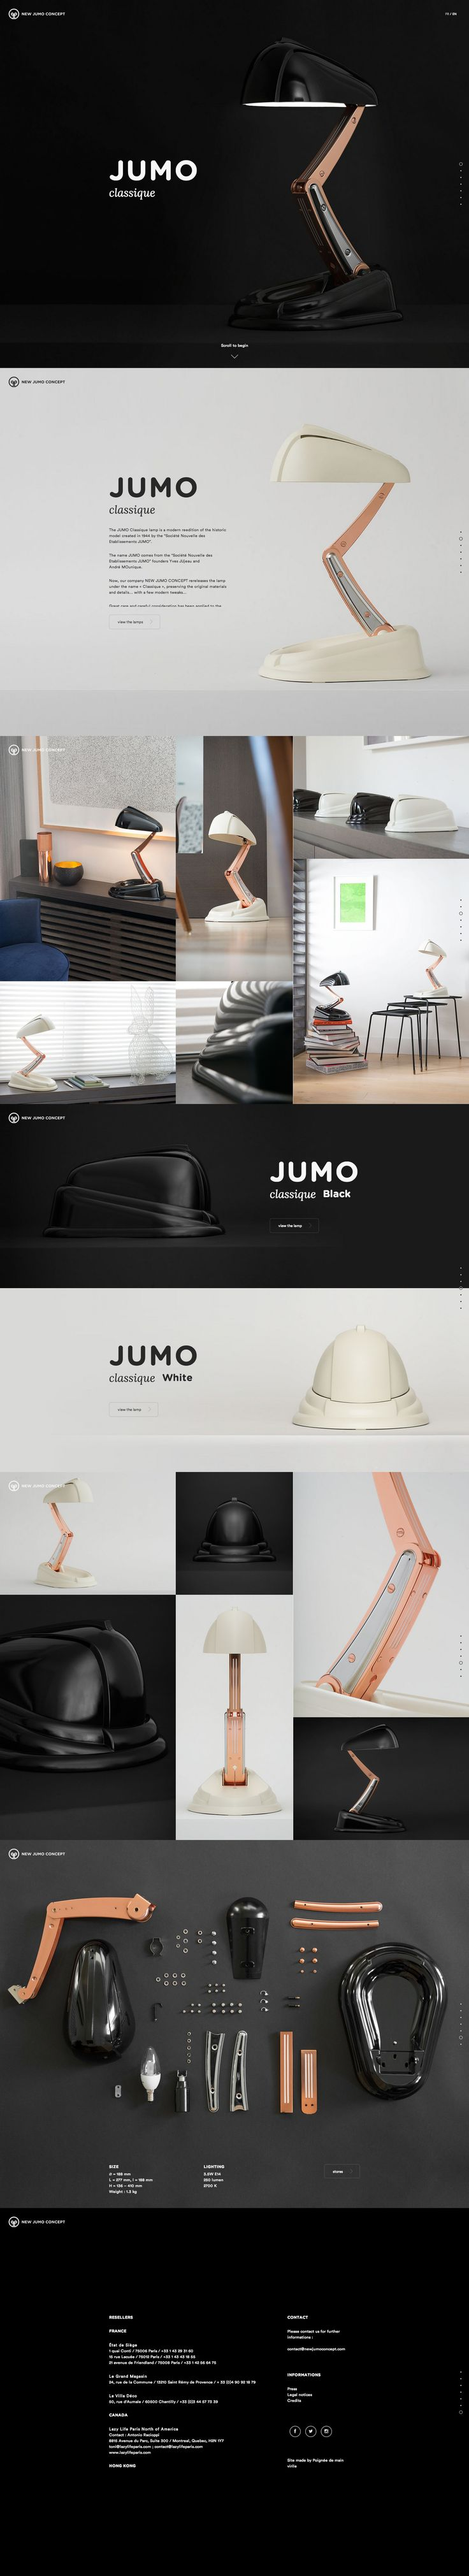 Jumo Classique. Functional, easy to store, and beautiful to look at. via @leftyfrizzle #webdesign #design